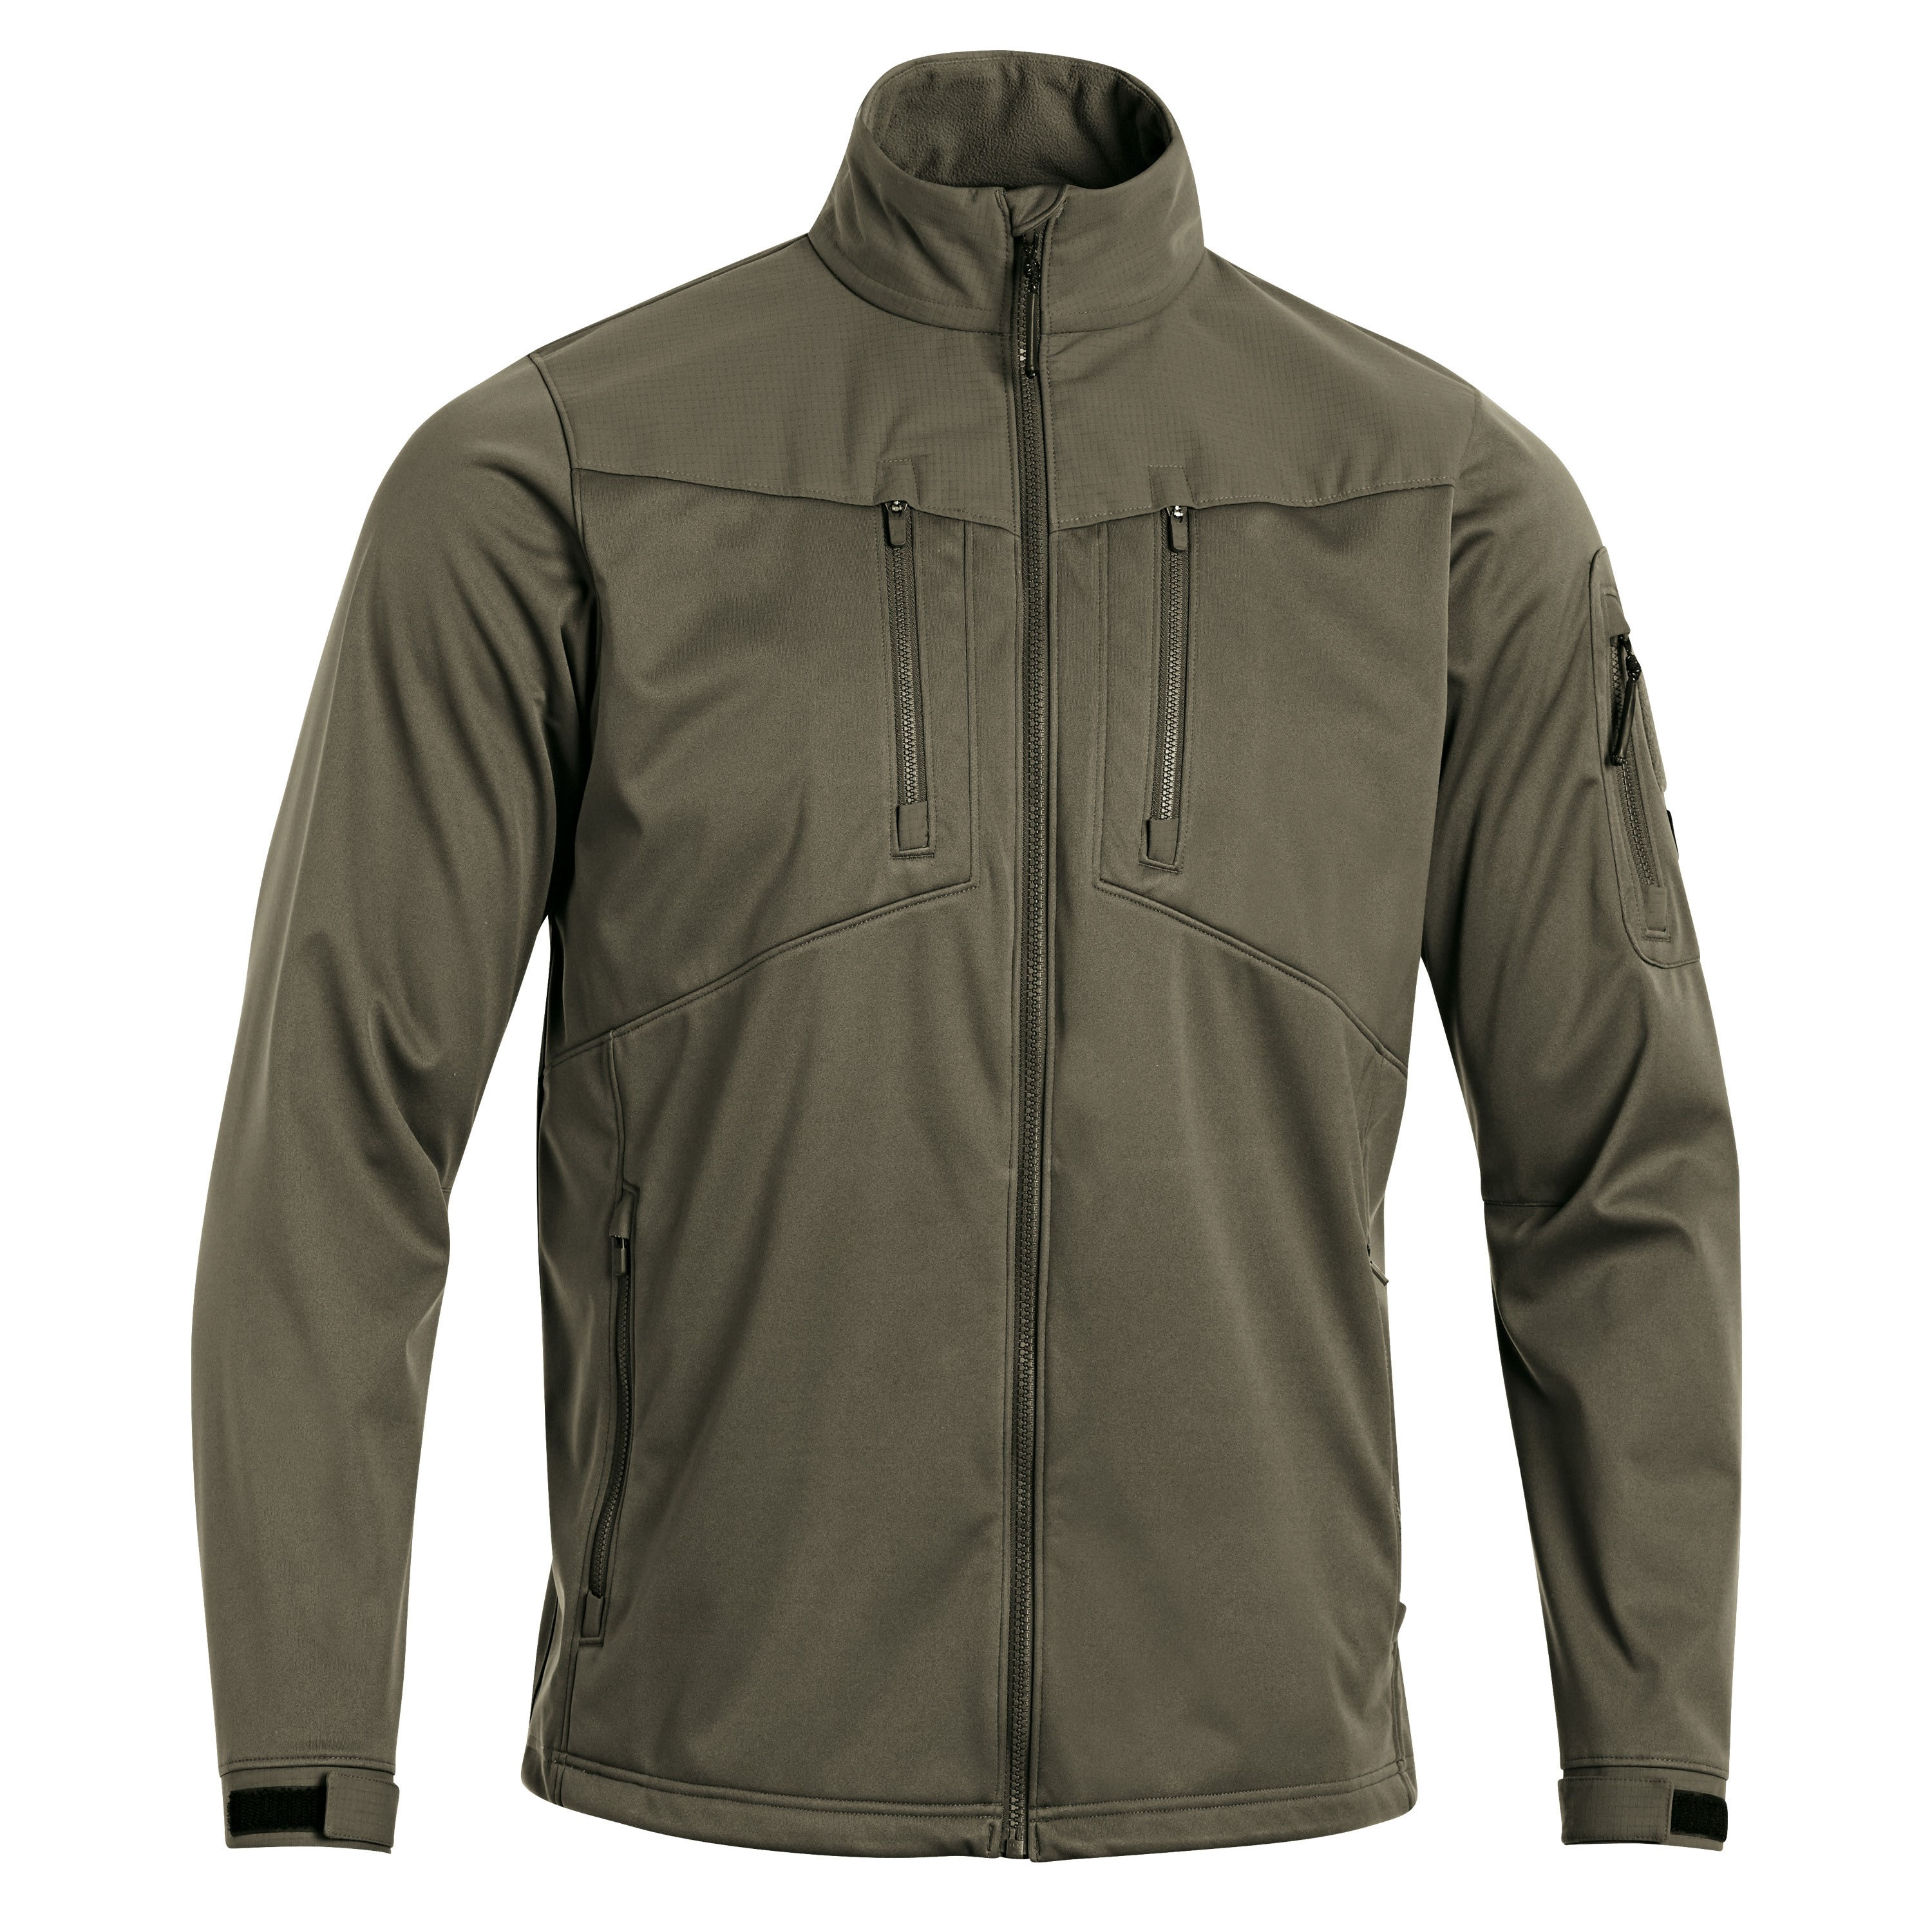 Under Armour Jacke Tactical Gale Force oliv